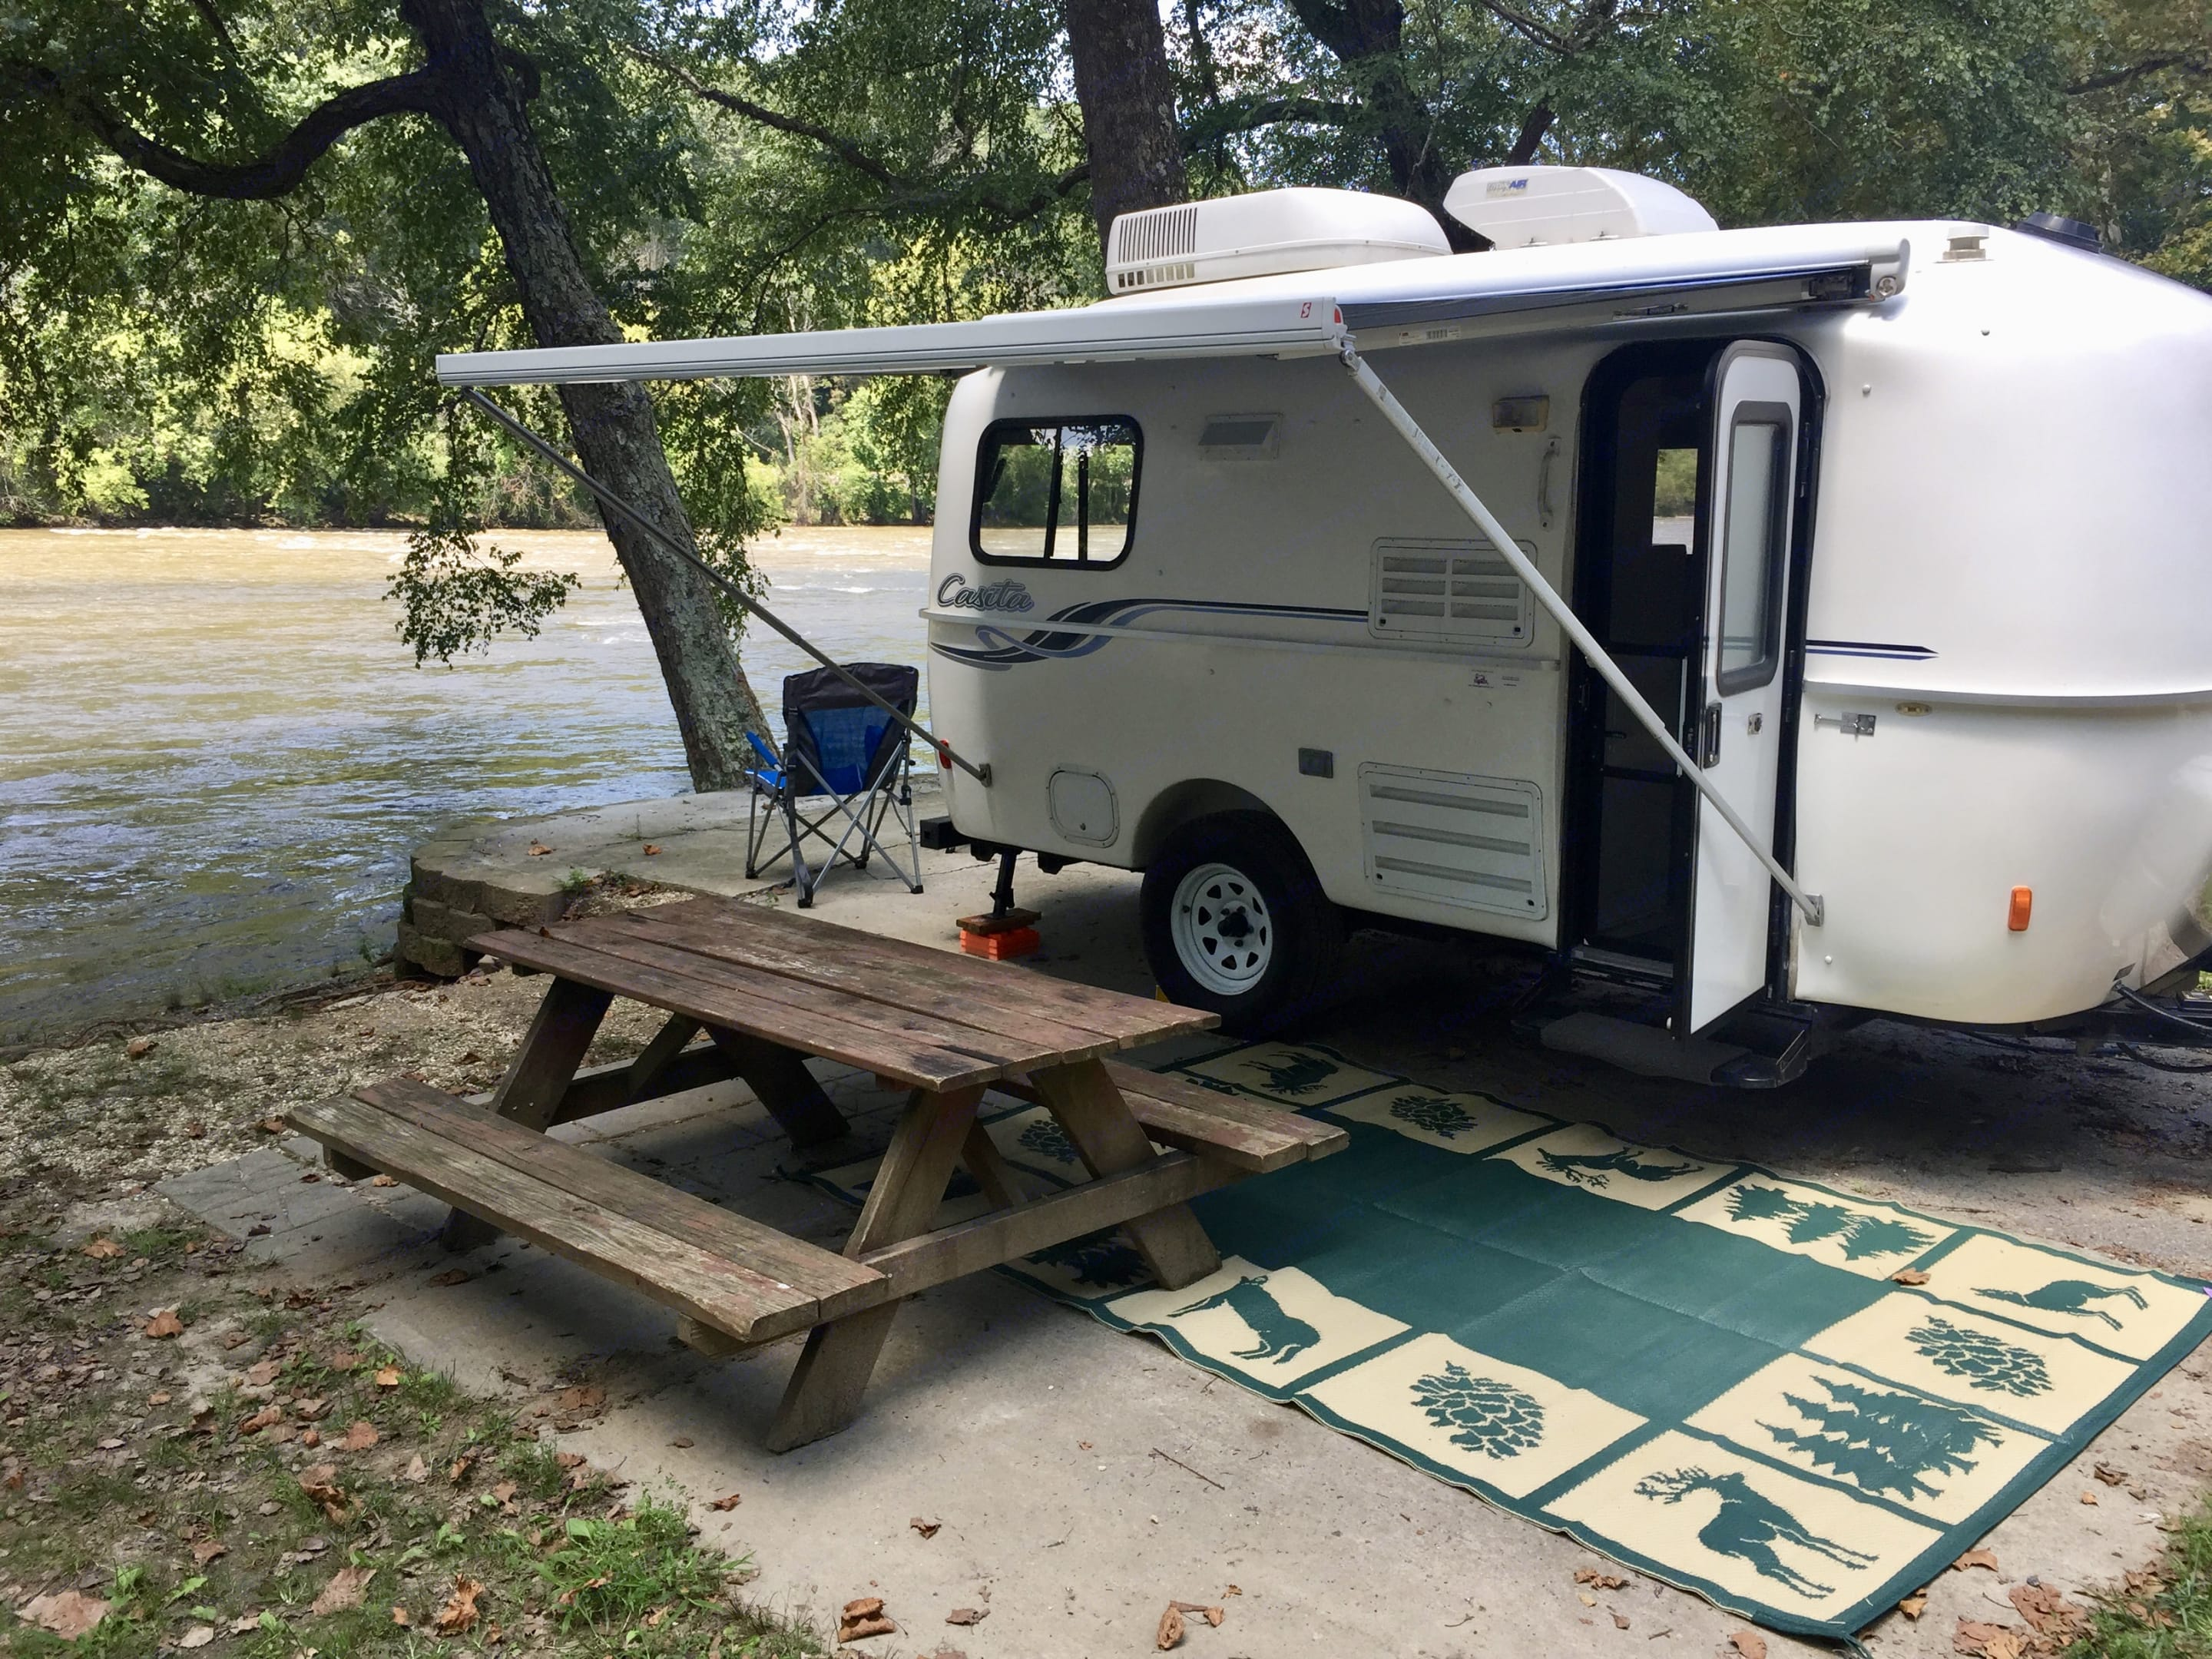 Camping by the French Broad River. Casita 17' Spirit Deluxe 2011